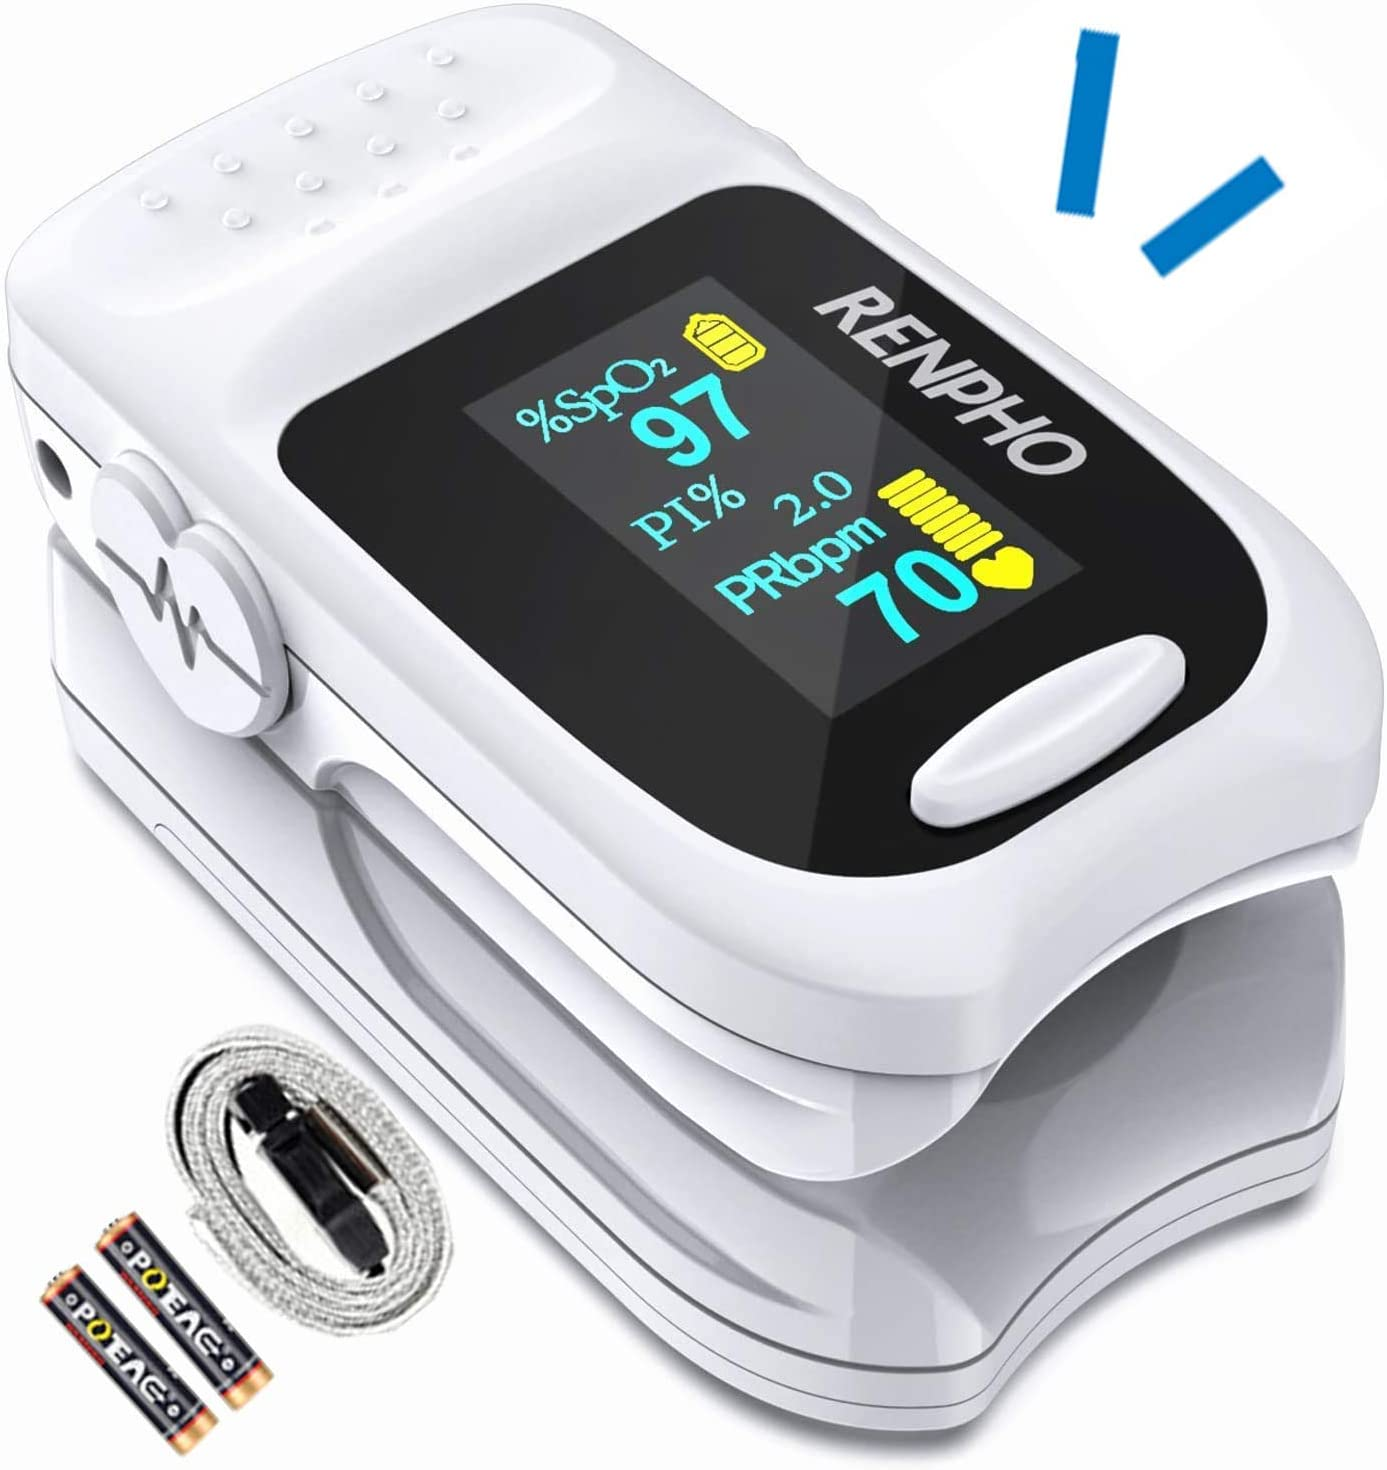 Pulse Oximeter Fingertip, RENPHO Accurate Reading Pediatric and Adult Oxygen Monitor Medical Use, Easy to Use Blood Oxygen Saturation Meter, Batteries and Lanyard, Spo2 Oximeter Portable with Alarm